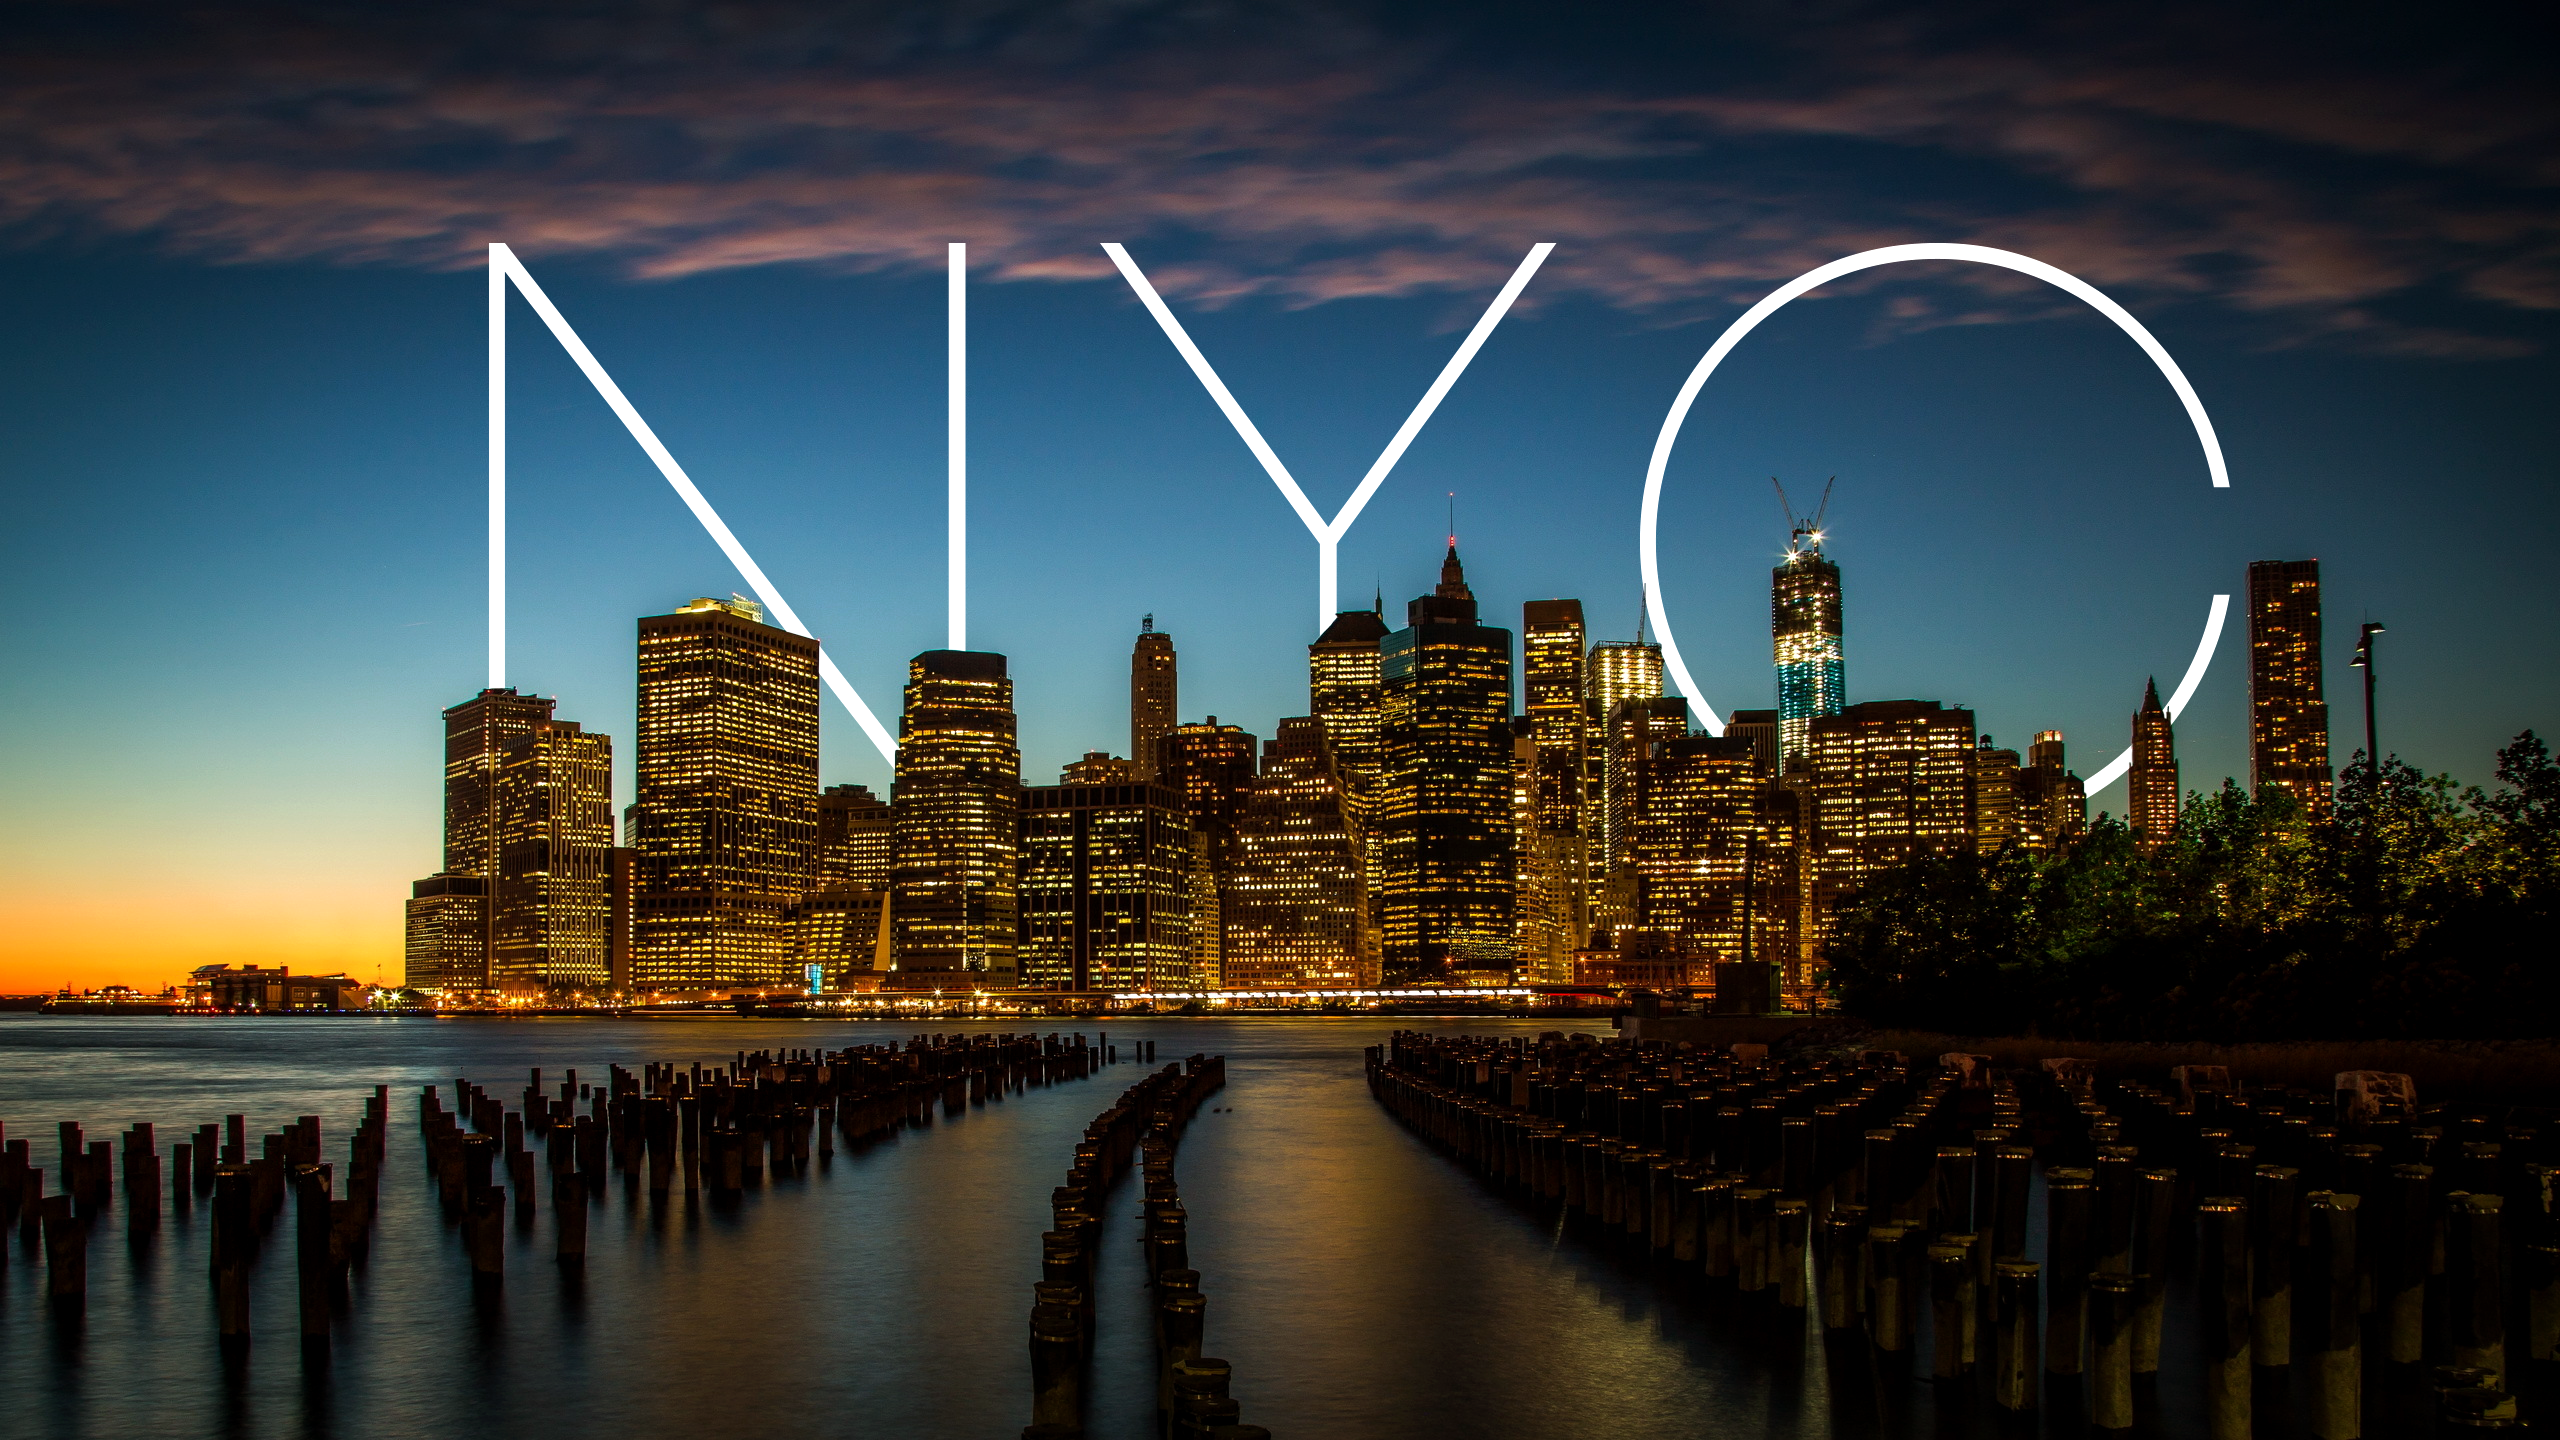 New York City Wallpaper   HD Wallpapers Backgrounds of 2560x1440